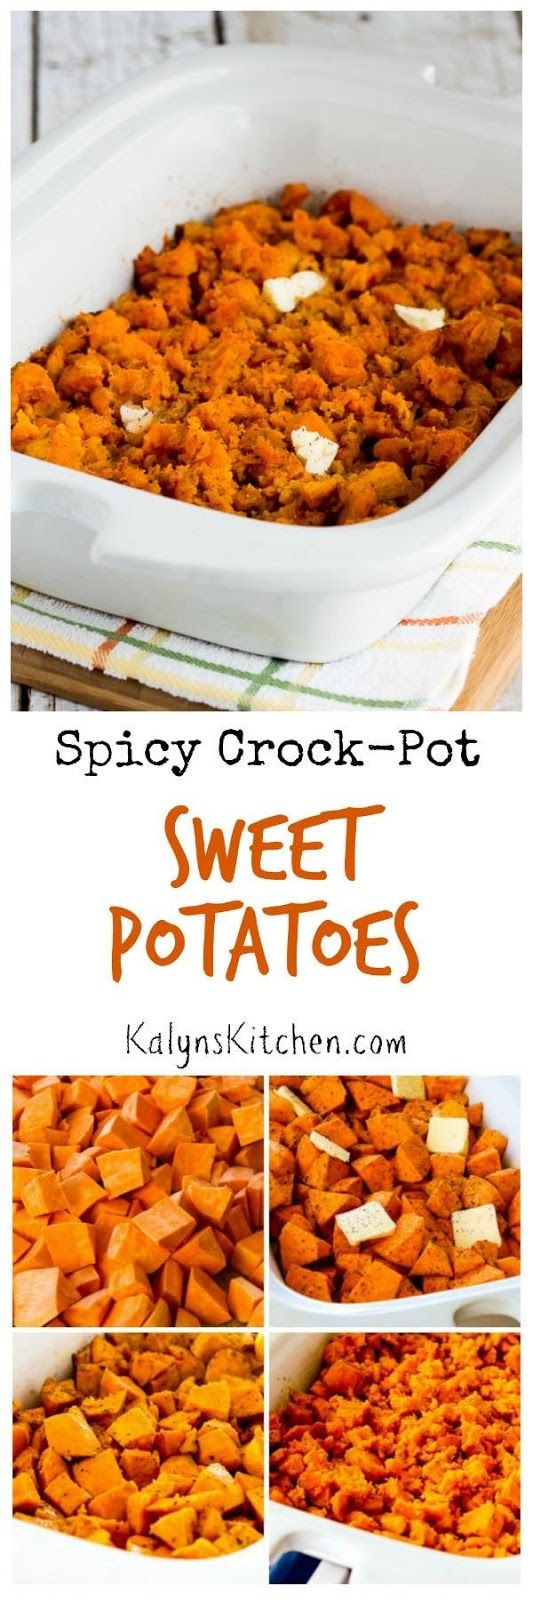 Spicy Crockpot Sweet Potatoes | Cayenne peppers, Ovens and ...